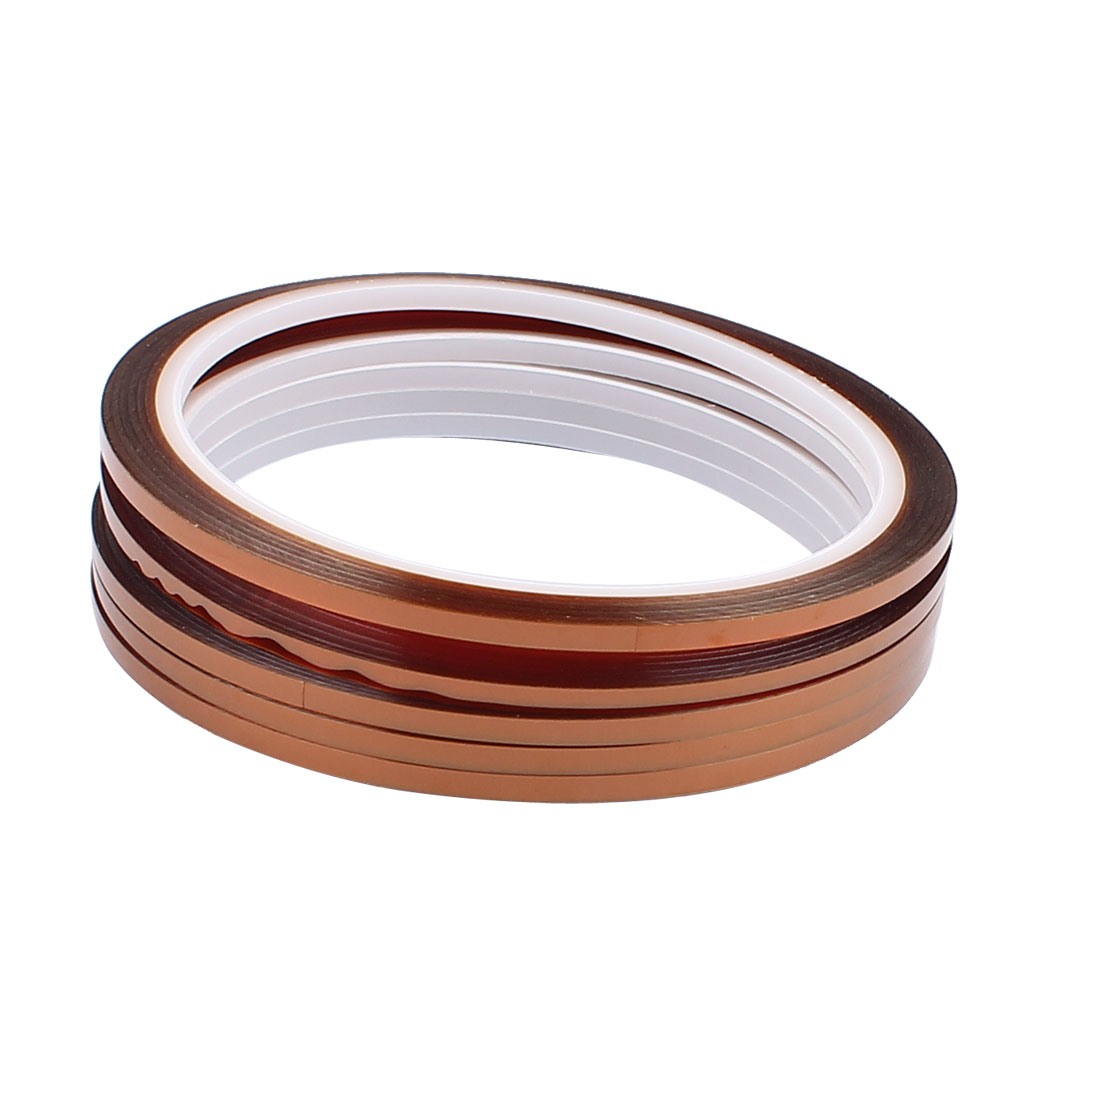 10 Pcs 0.3cm x 33m High-Temperature Resistance Polymide DIY Tape Goldfinger